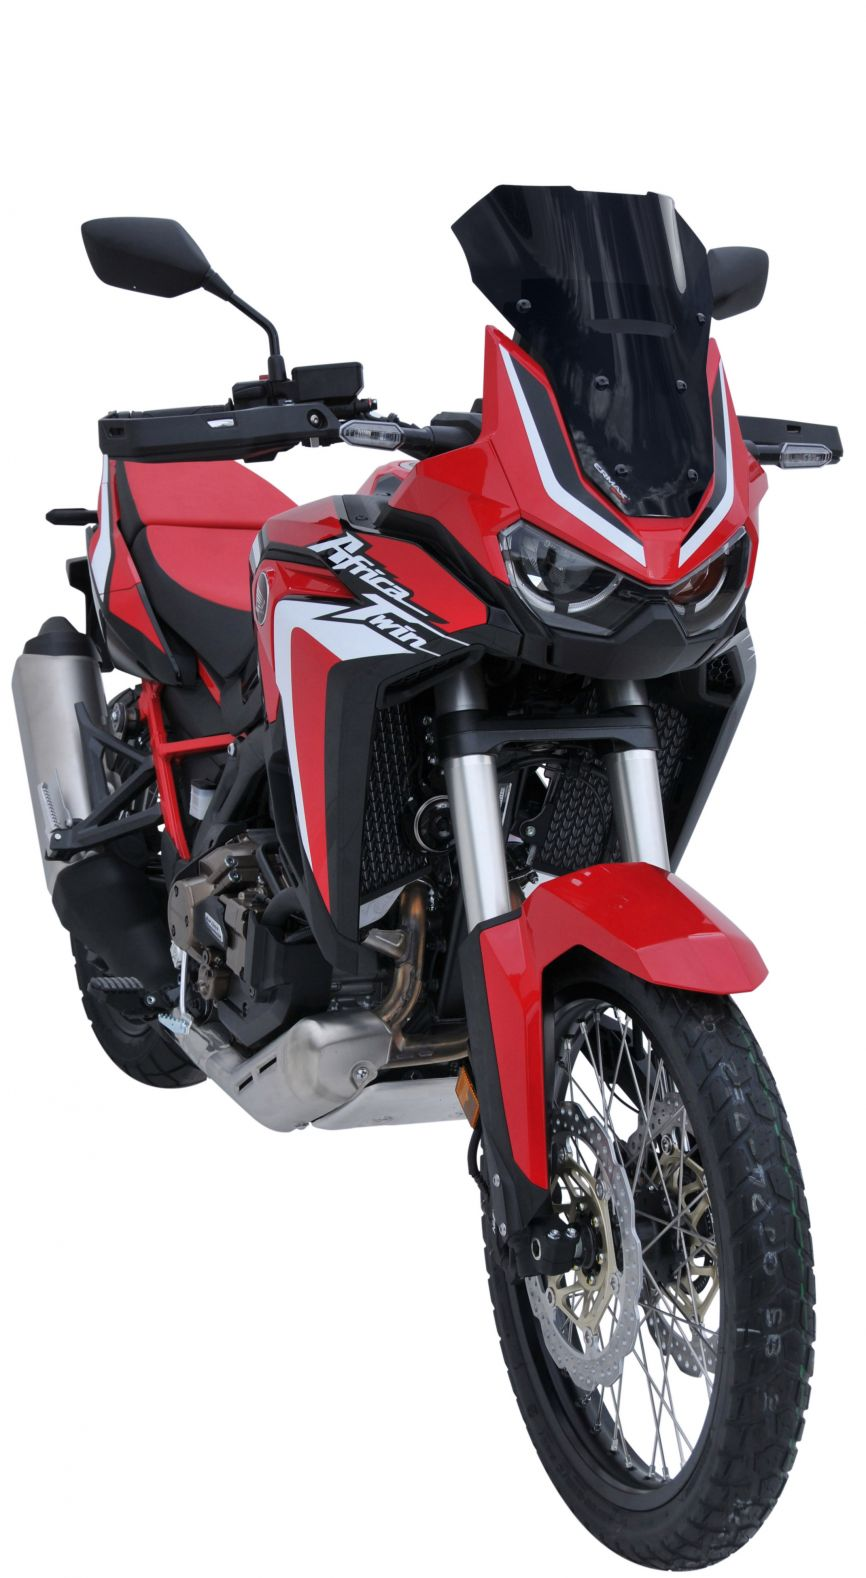 sport screen ermax for africa twin crf 1100 l 2020 /2021